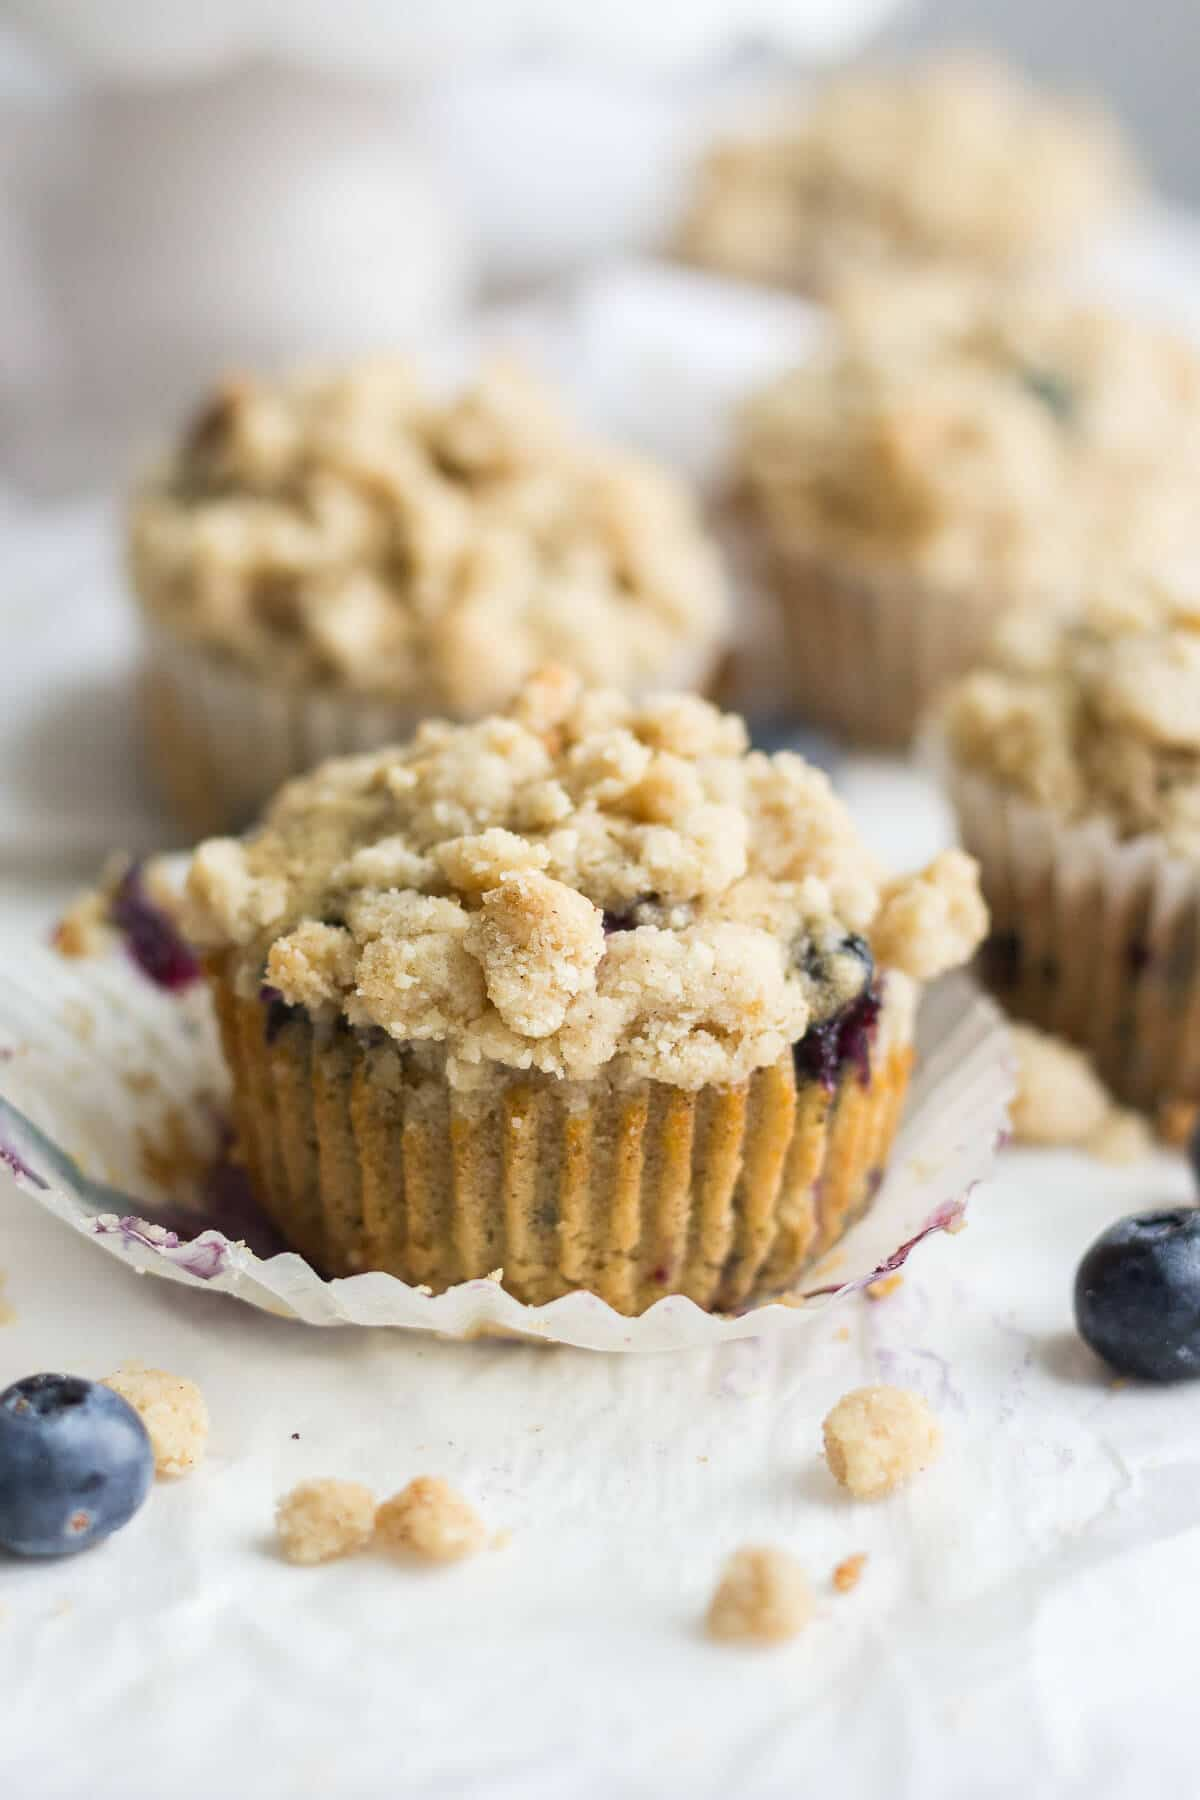 Easy Blueberry Muffins With Crumble Topping